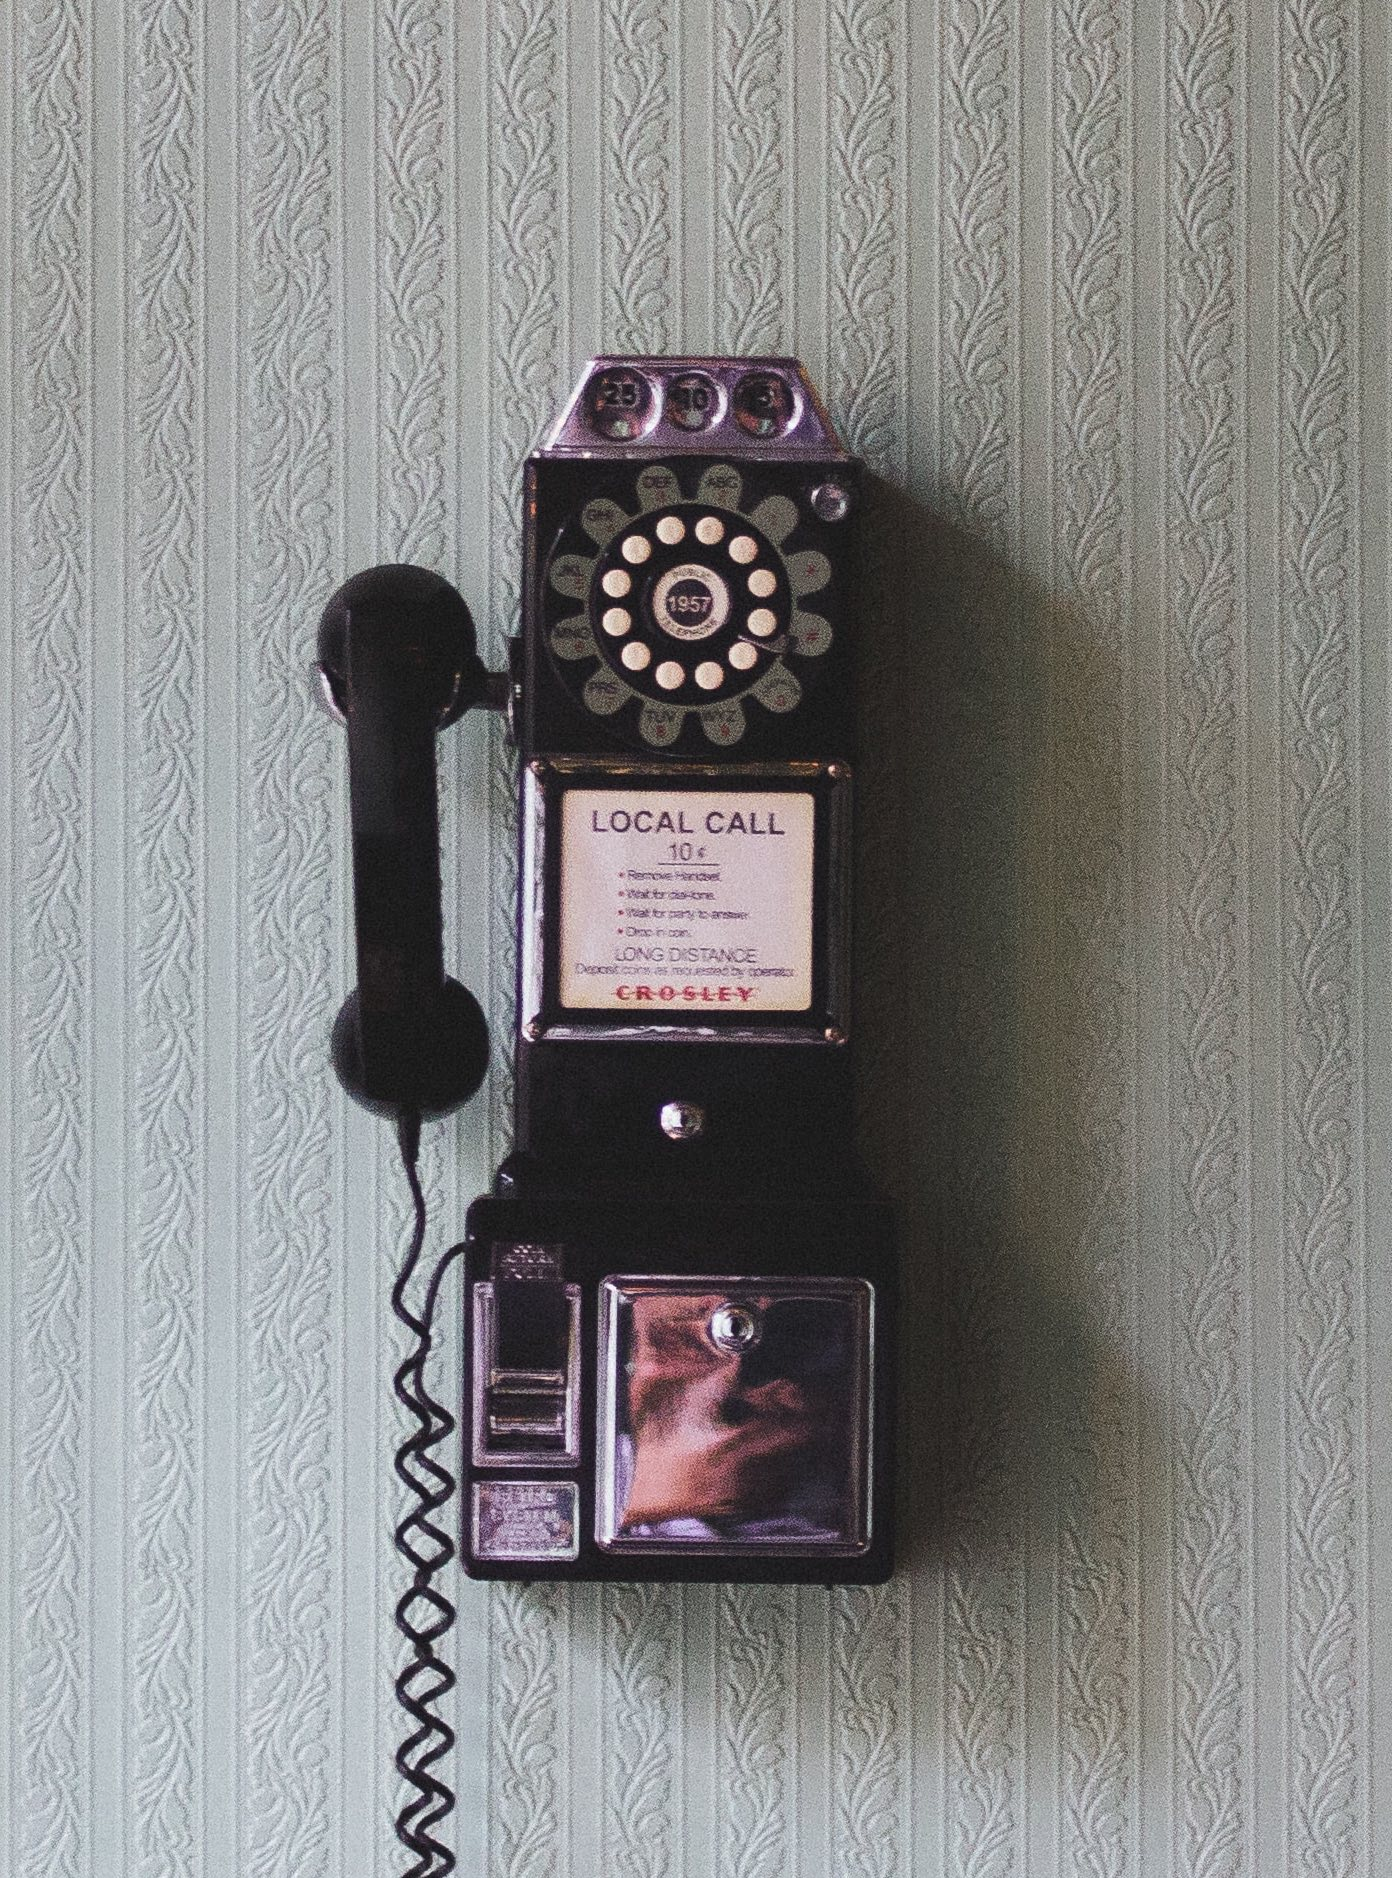 rotary phone on a wall